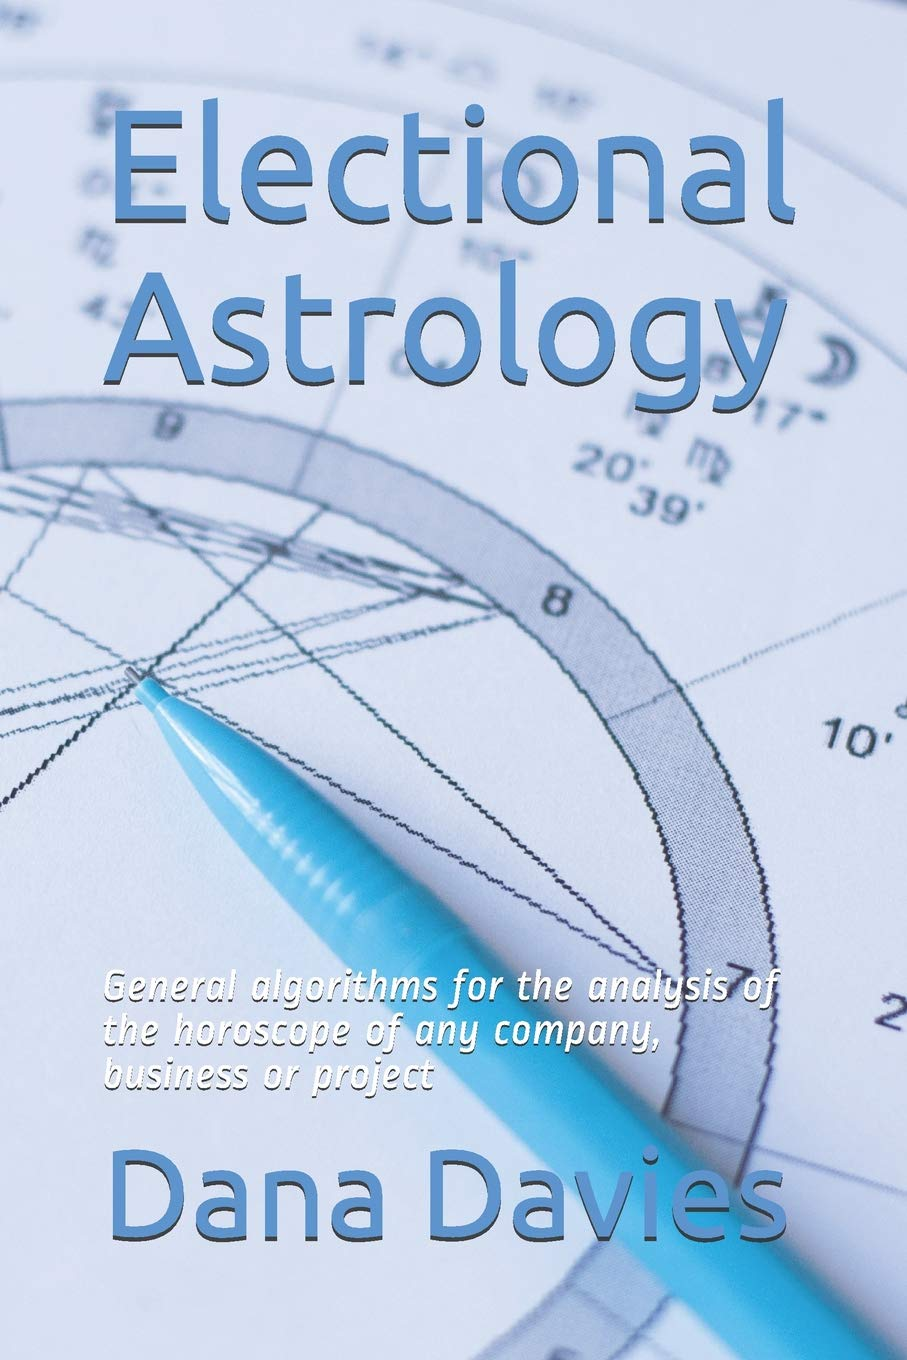 electional astrology business